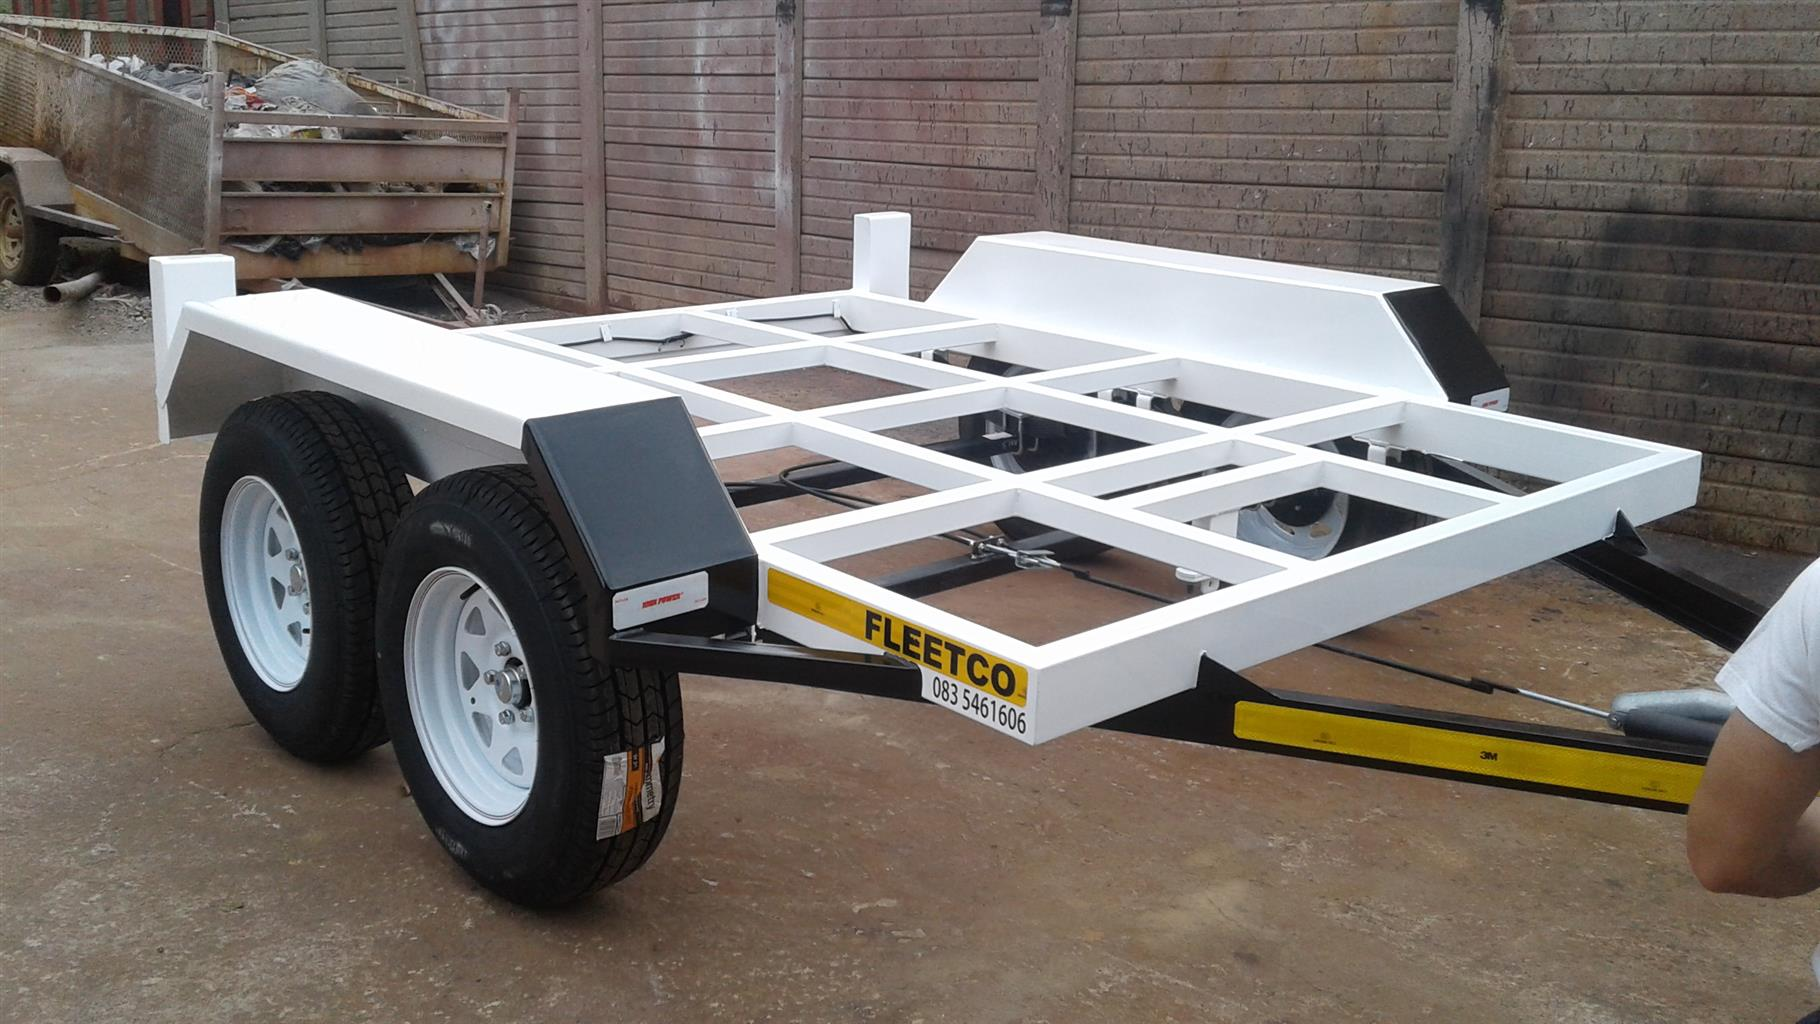 1.7M/2.350M SKELETON TRAILER ONLY ON ORDER TO BE BUILD